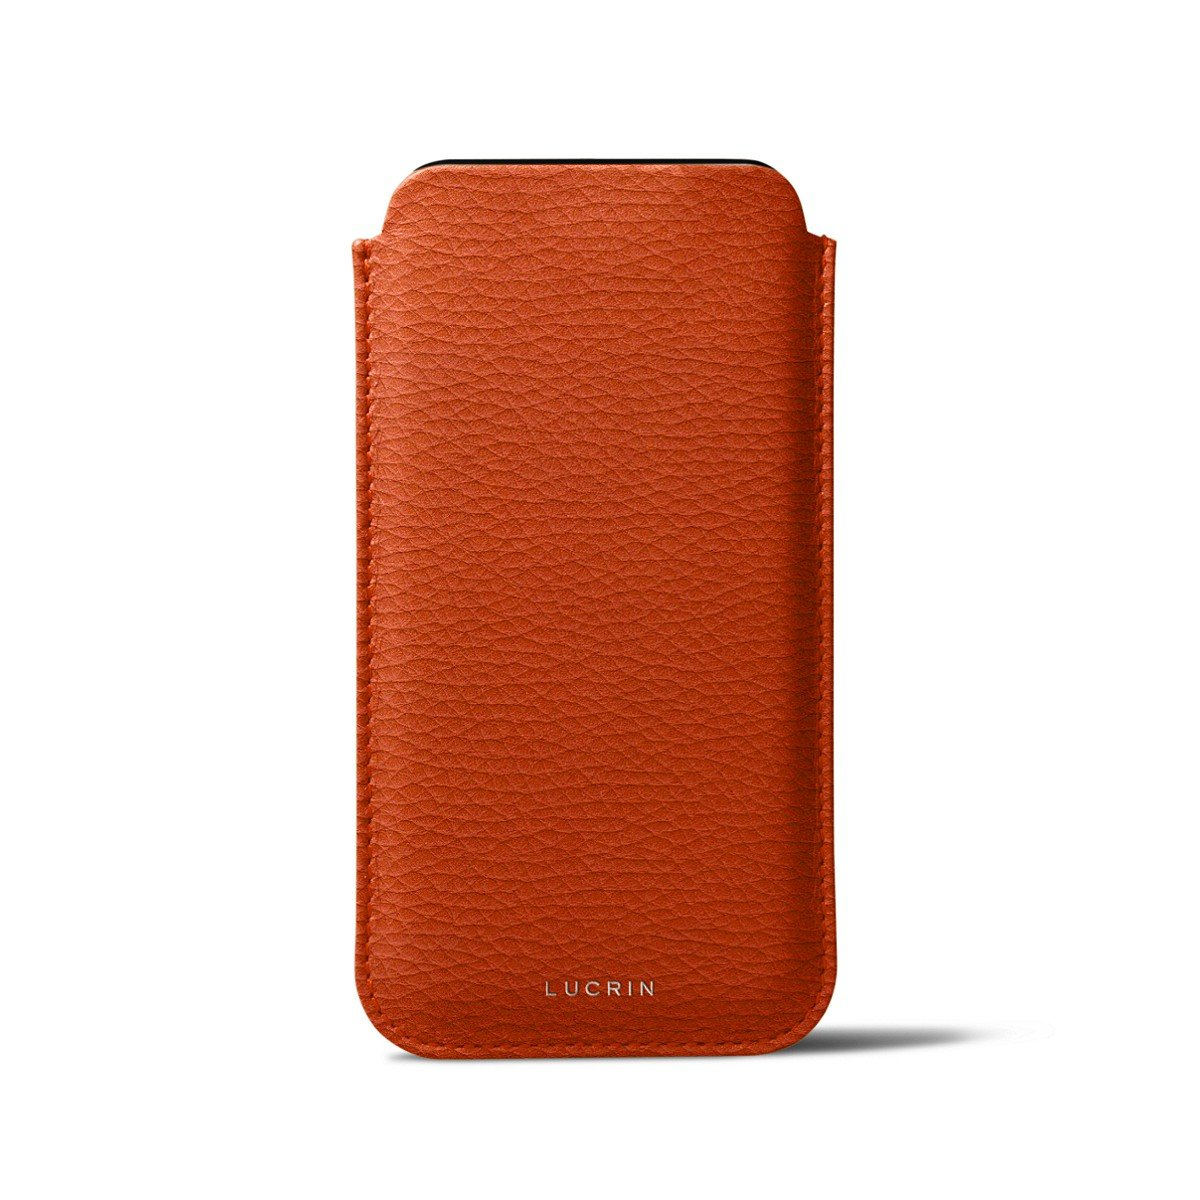 Lucrin - Classic Case for iPhone X - Orange - Granulated Leather by Lucrin (Image #3)